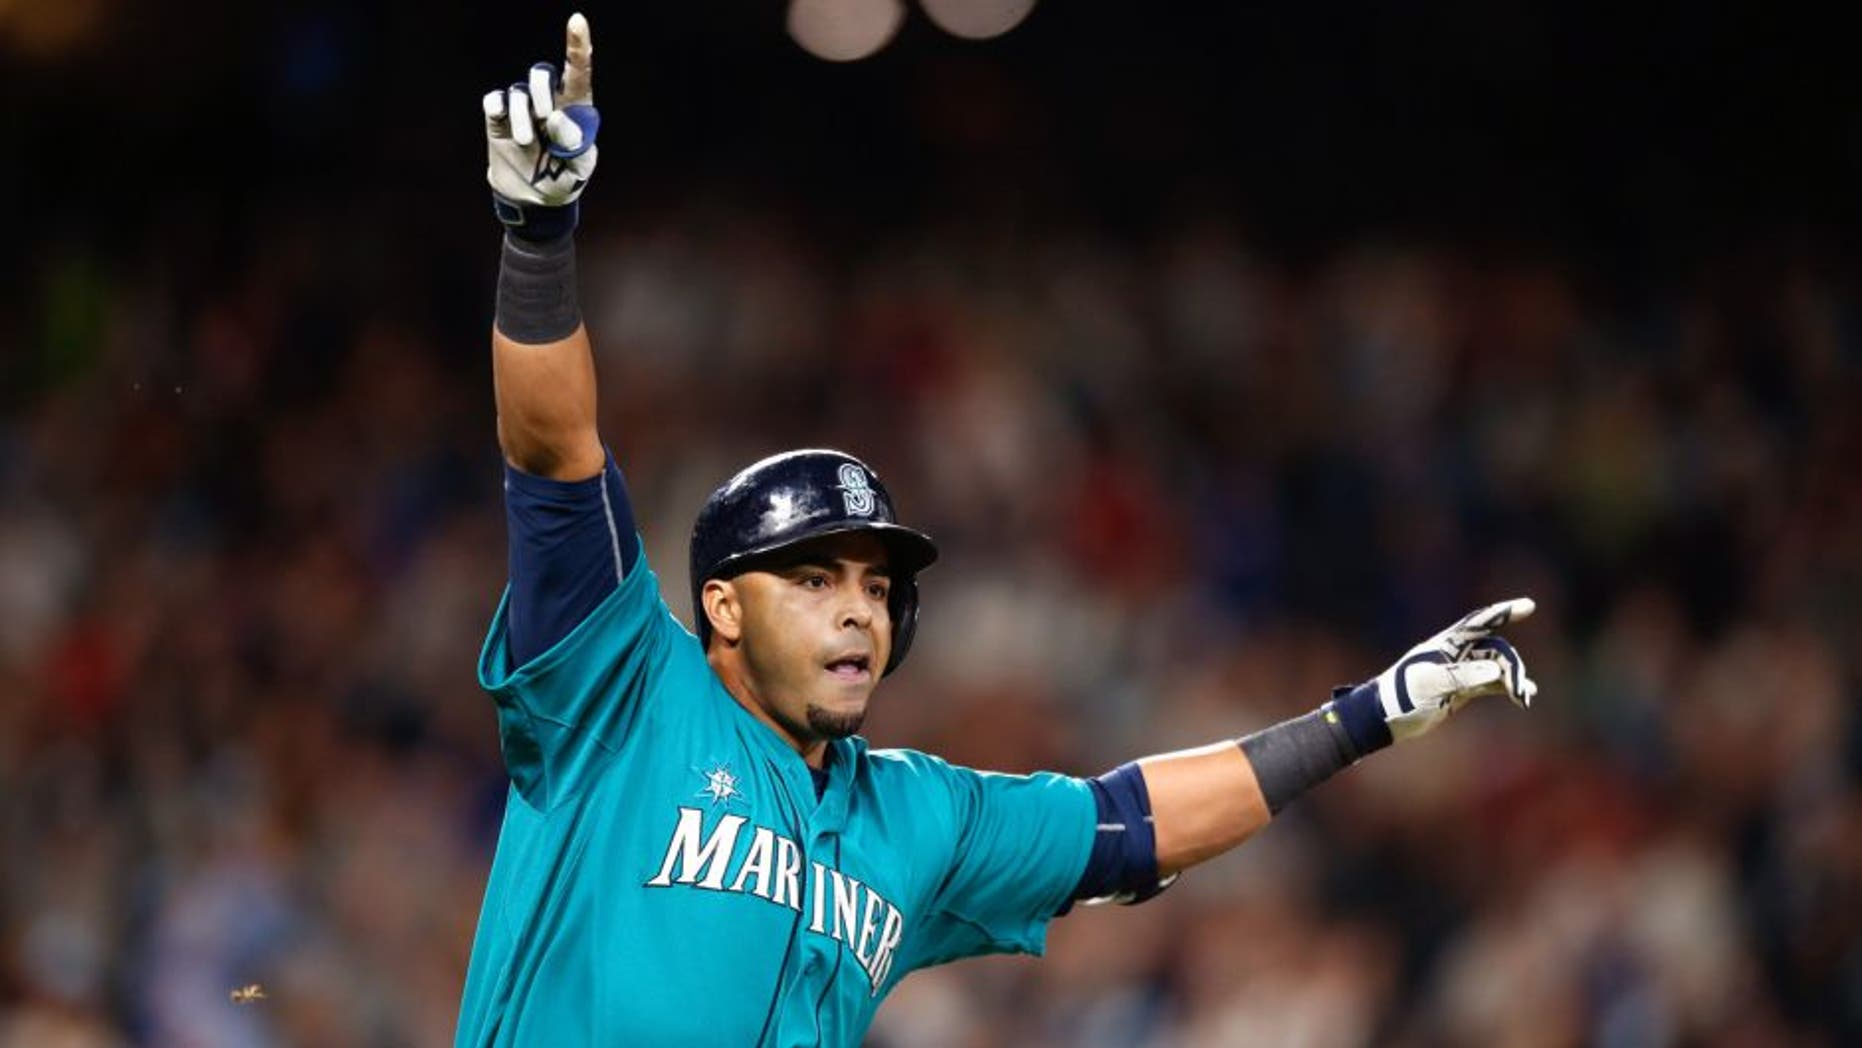 SEATTLE, WA - MAY 15: Nelson Cruz #23 of the Seattle Mariners celebrates after hitting a walkoff single to defeat the Boston Red Sox 2-1 at Safeco Field on May 15, 2015 in Seattle, Washington. (Photo by Otto Greule Jr/Getty Images)